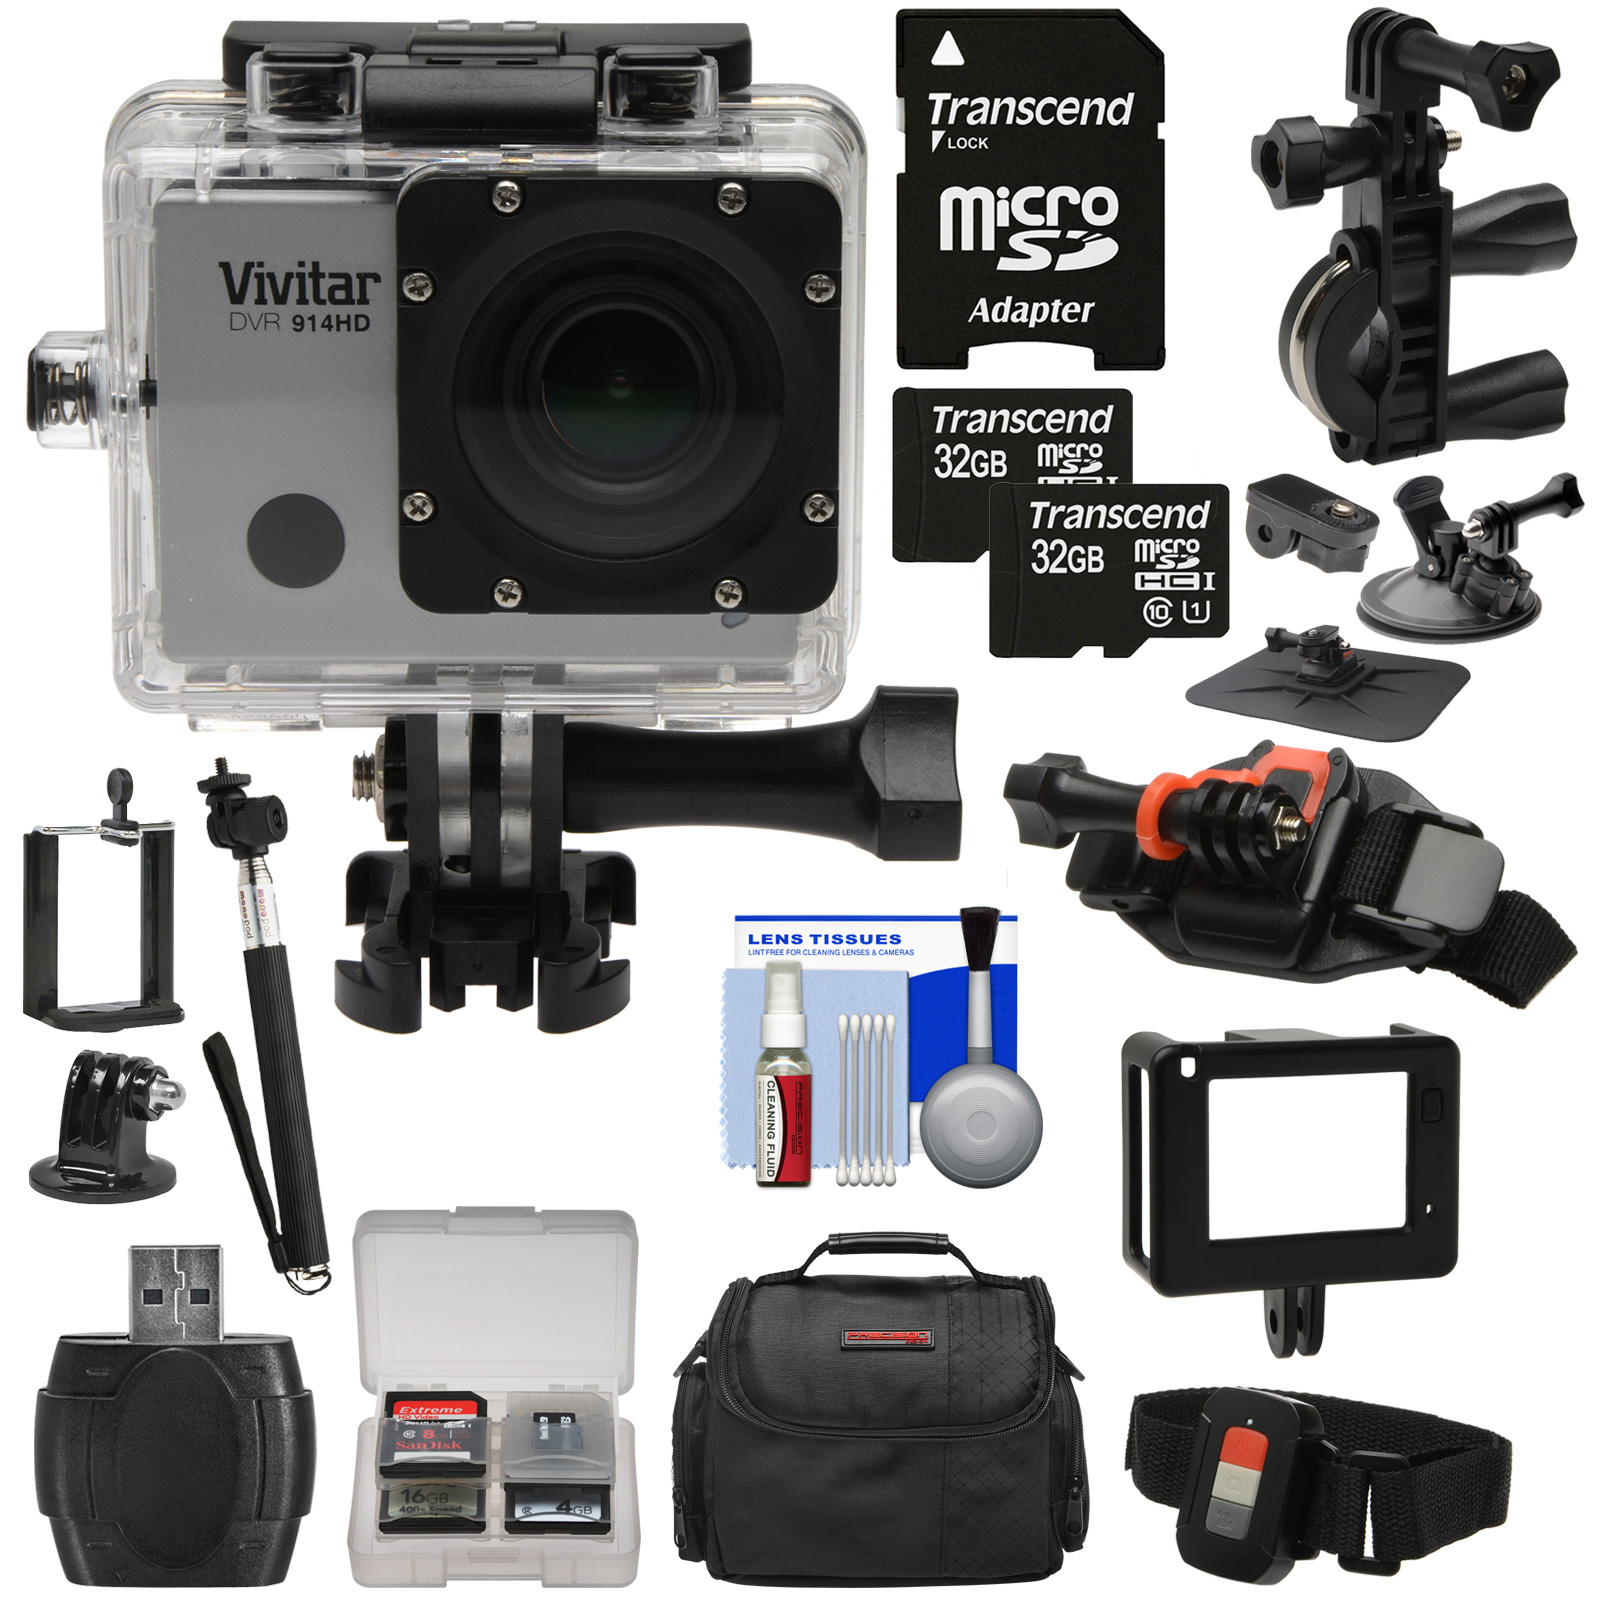 Vivitar DVR914HD 1440p HD Wi-Fi Waterproof Action Video Camera Camcorder (Silver) + Remote, Helmet, Bike, Suction Cup + Dashboard Mounts + 64GB + Case Kit